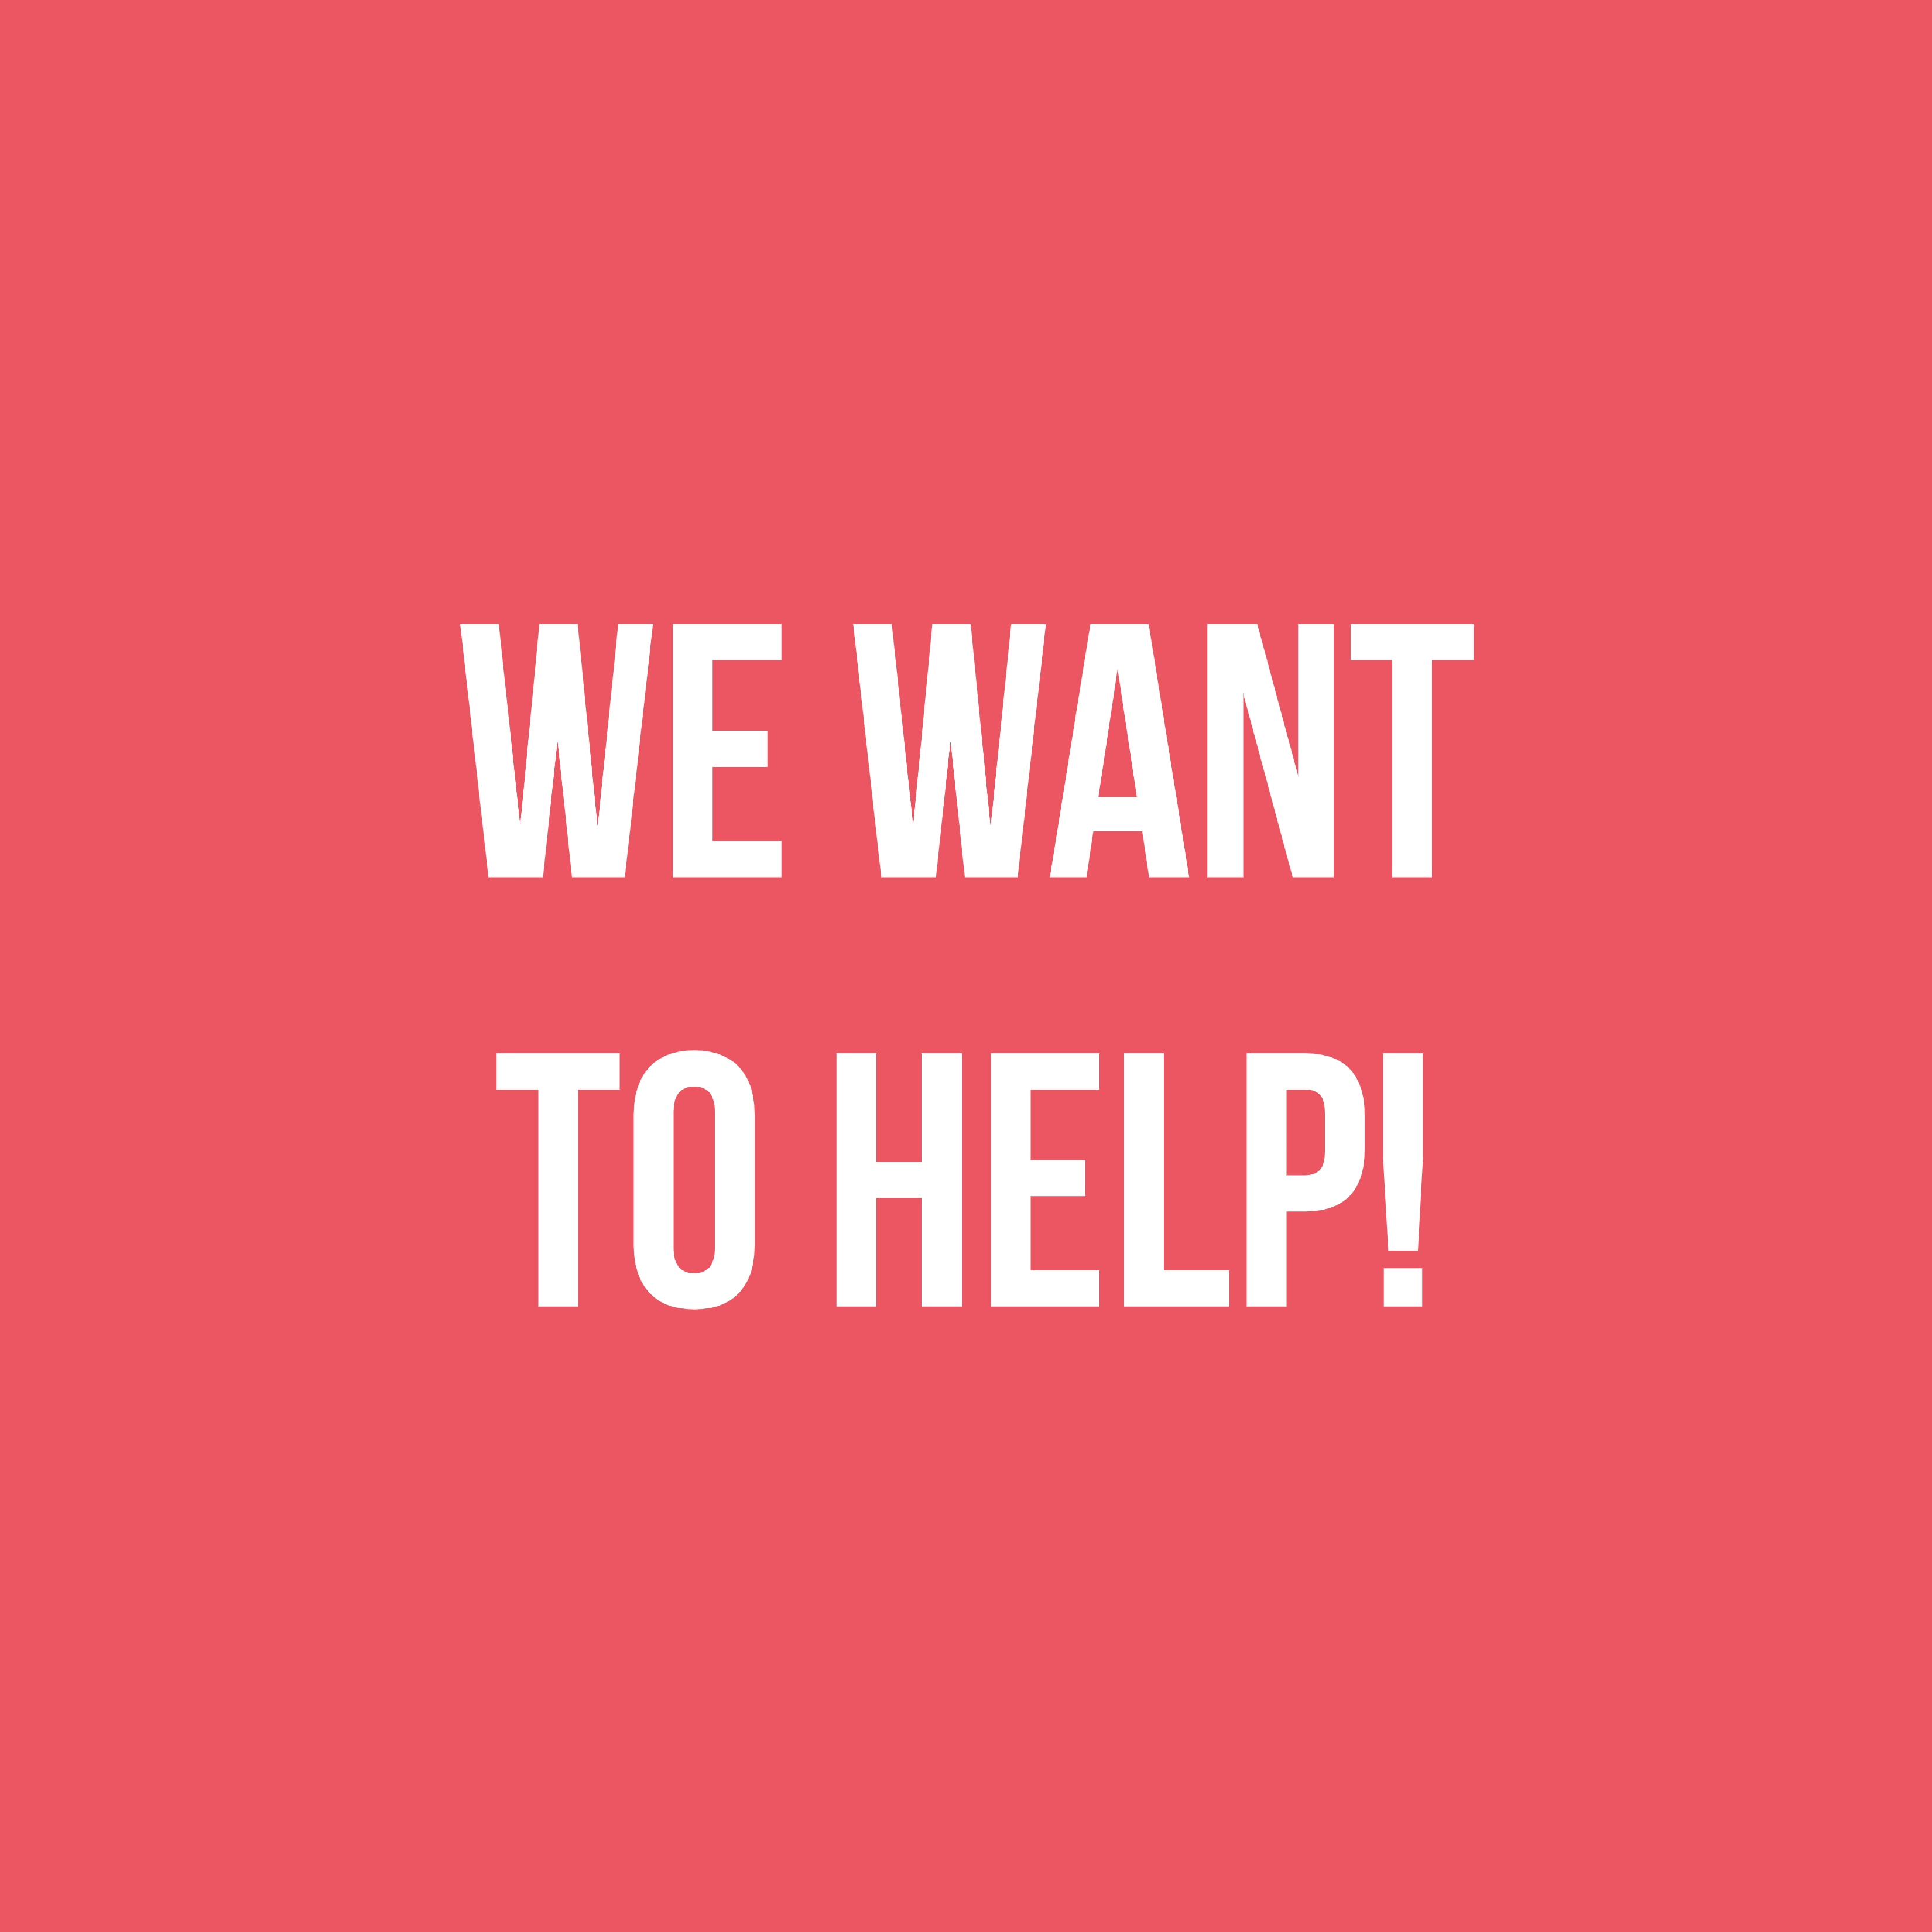 we want to help